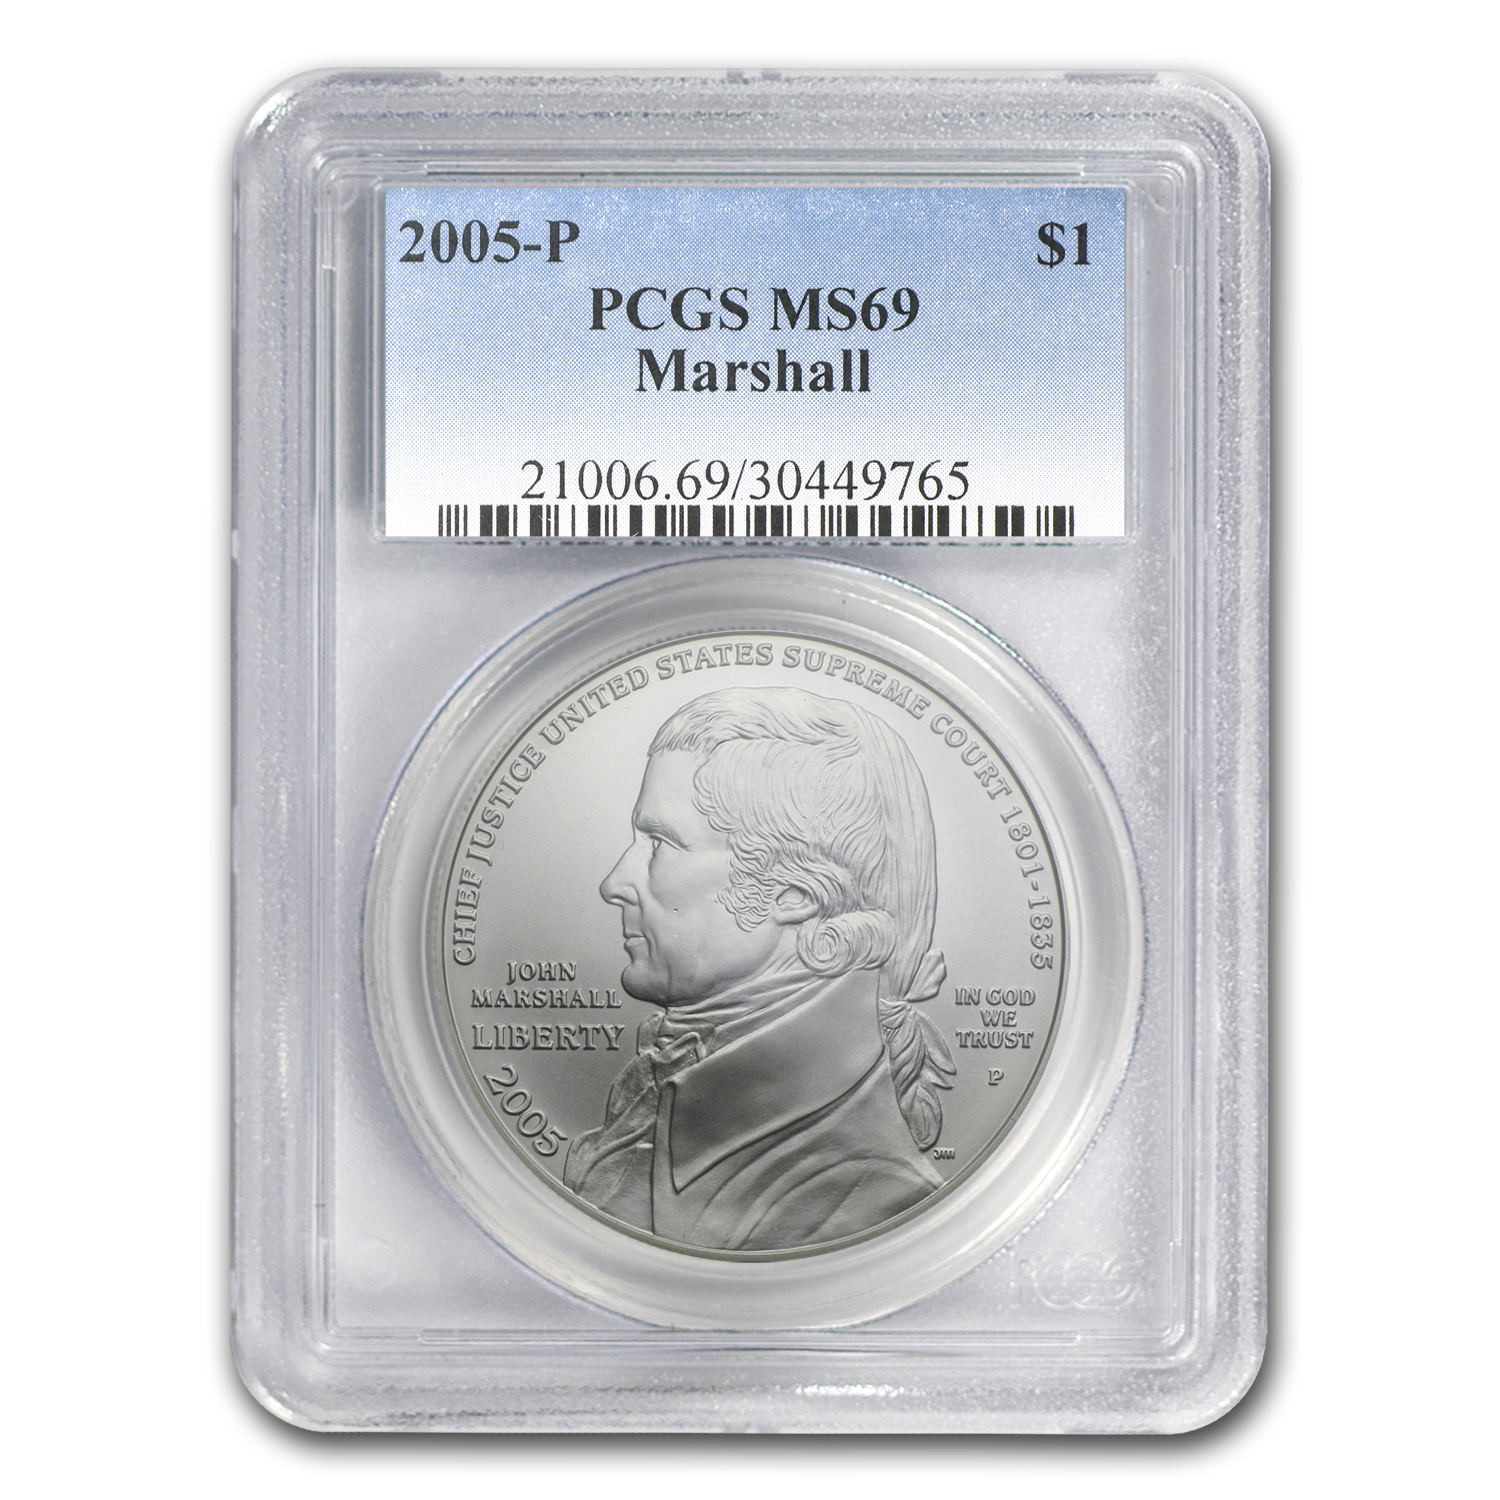 2005-P Chief Justice Marshall $1 Silver Commemorative MS-69 PCGS